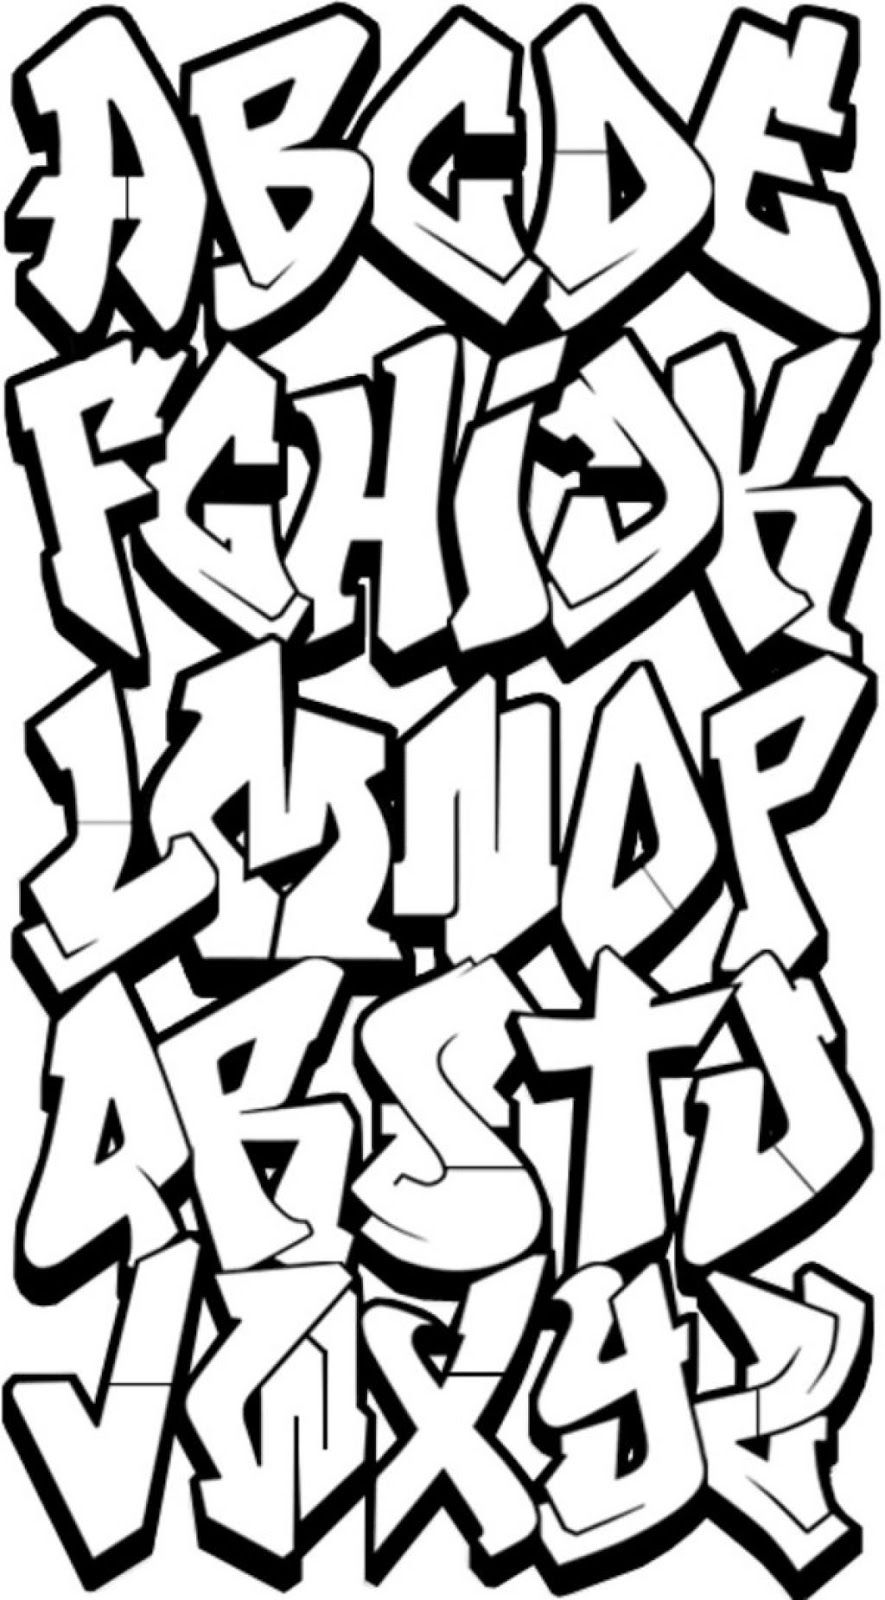 Top how to make a grafitti - Buscar con Google | ART | Pinterest  WB83